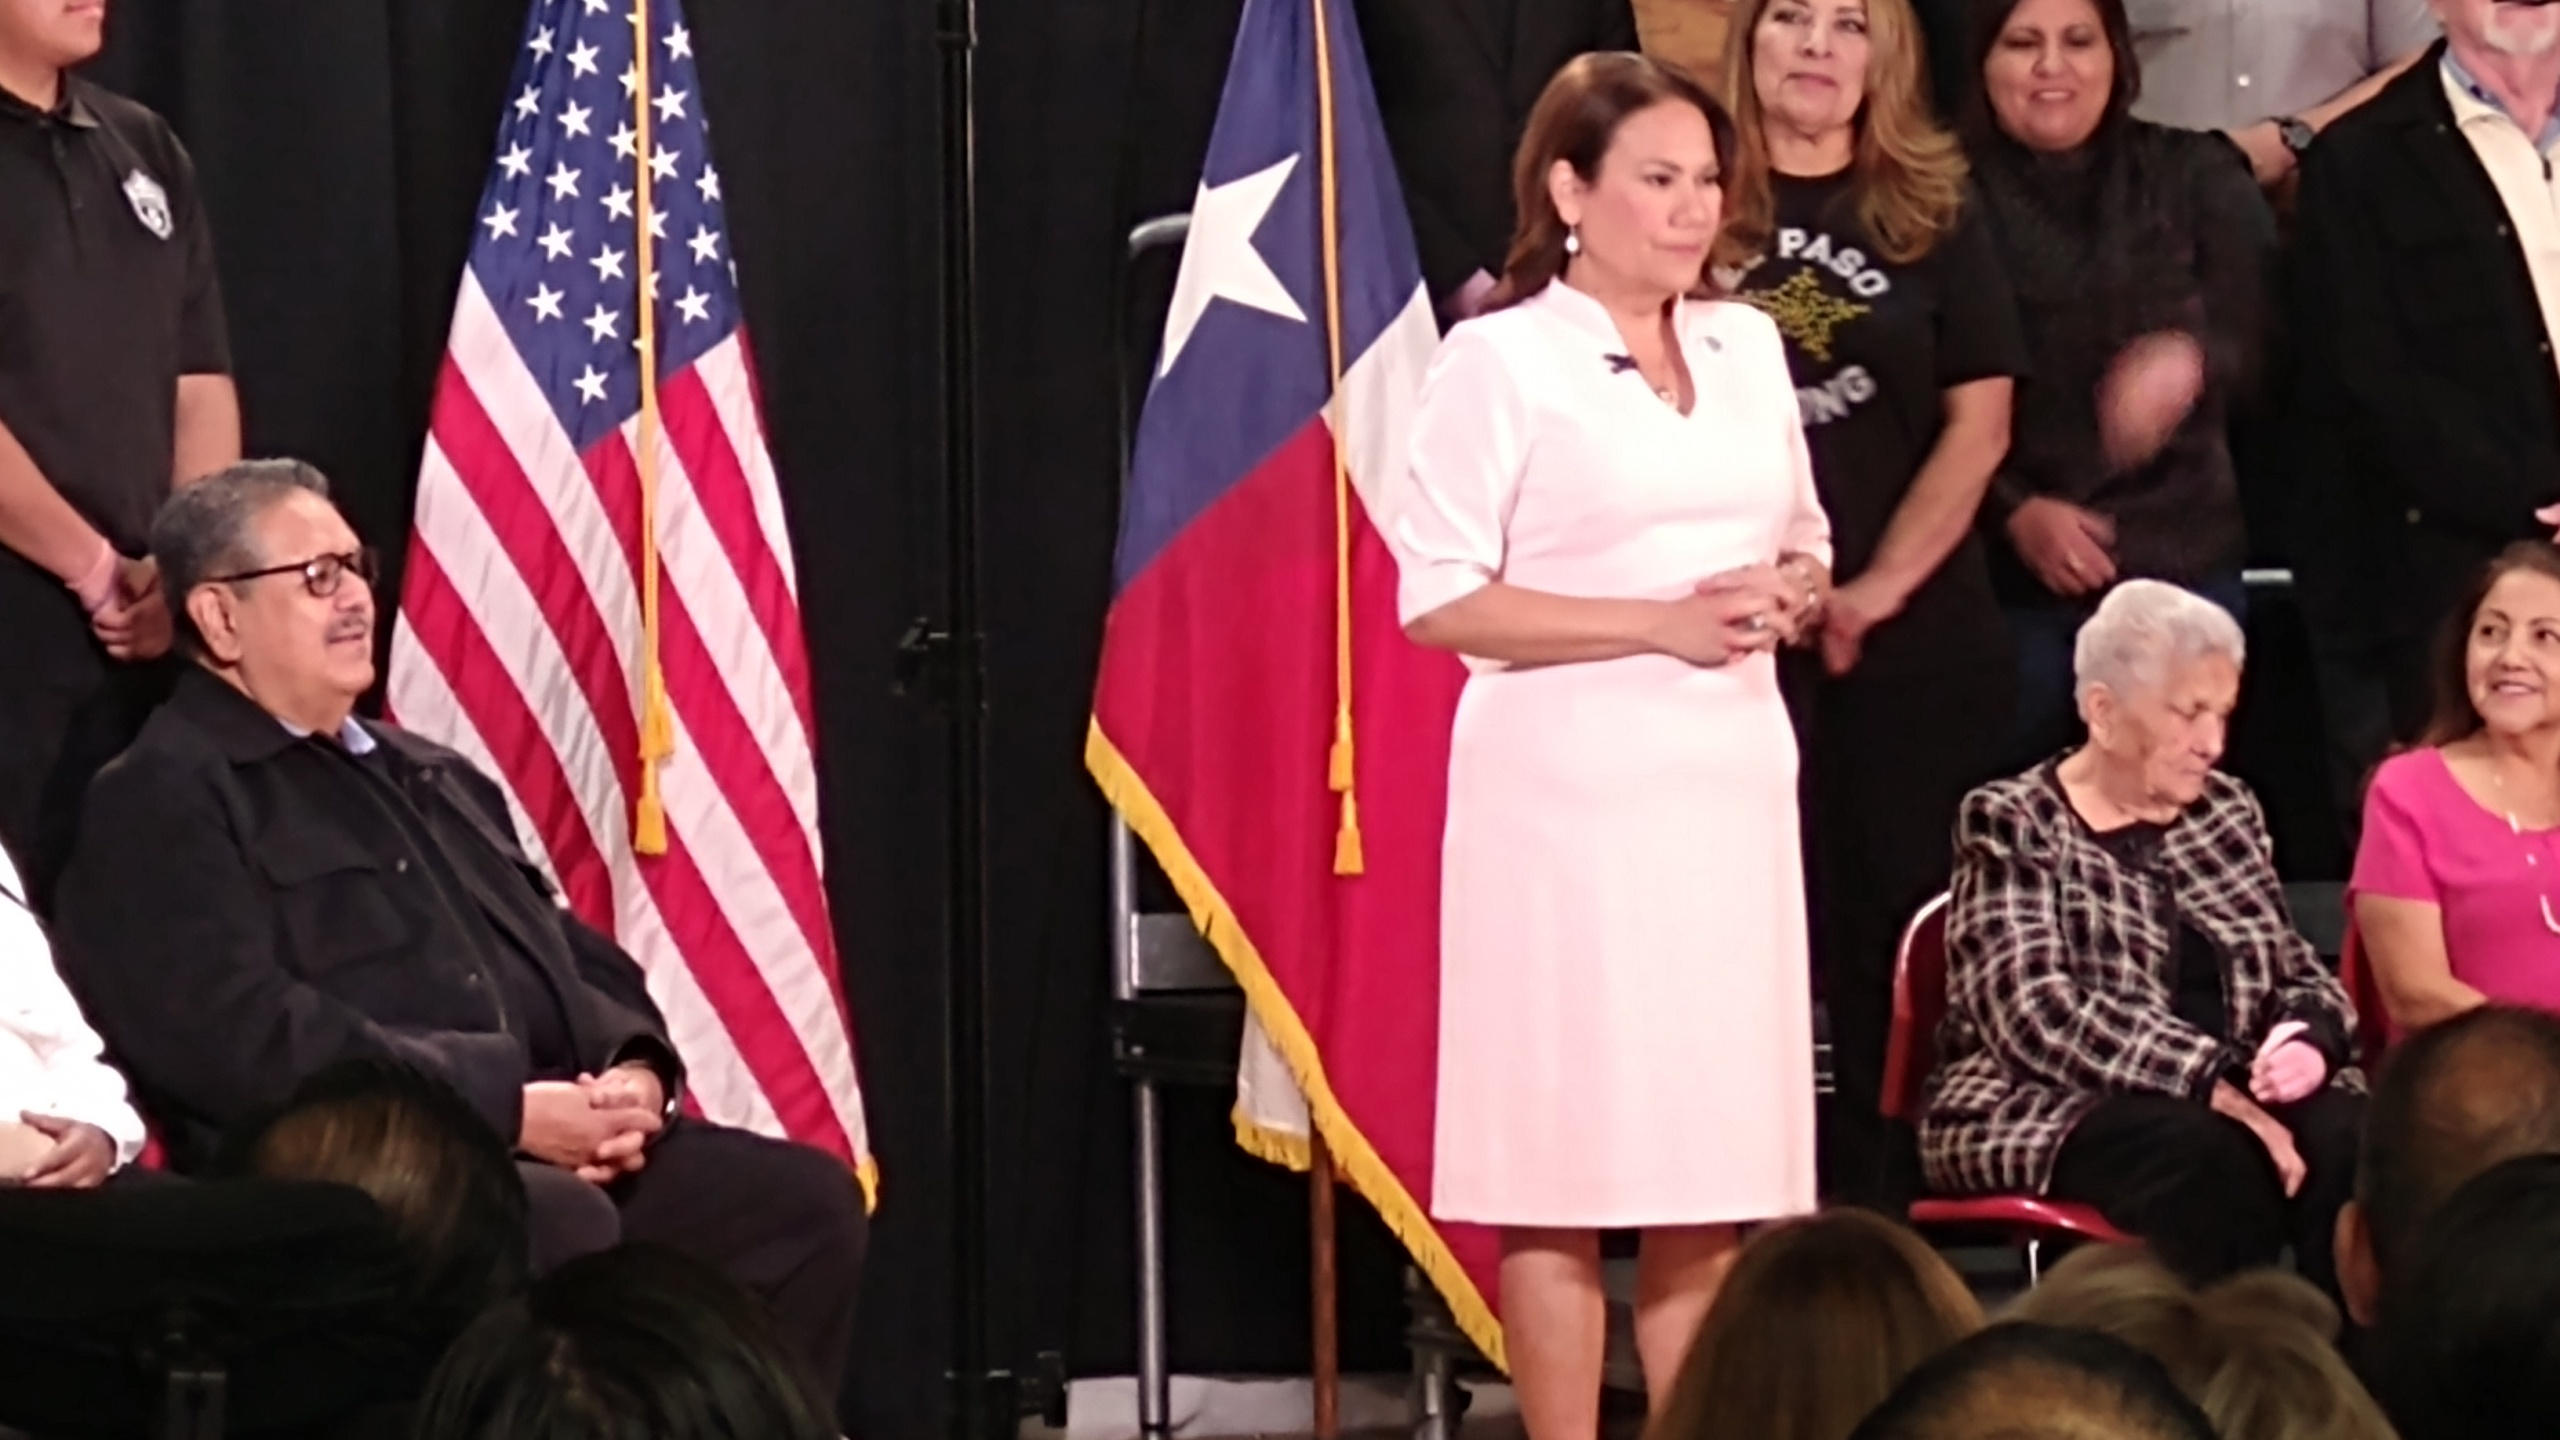 U.S. Rep. Veronica Escobar (D-Texas) takes center stage at an El Paso, Texas low-income health clinic to respond to President Trump's State of the Union address. (Border Report/Julian Resendiz)